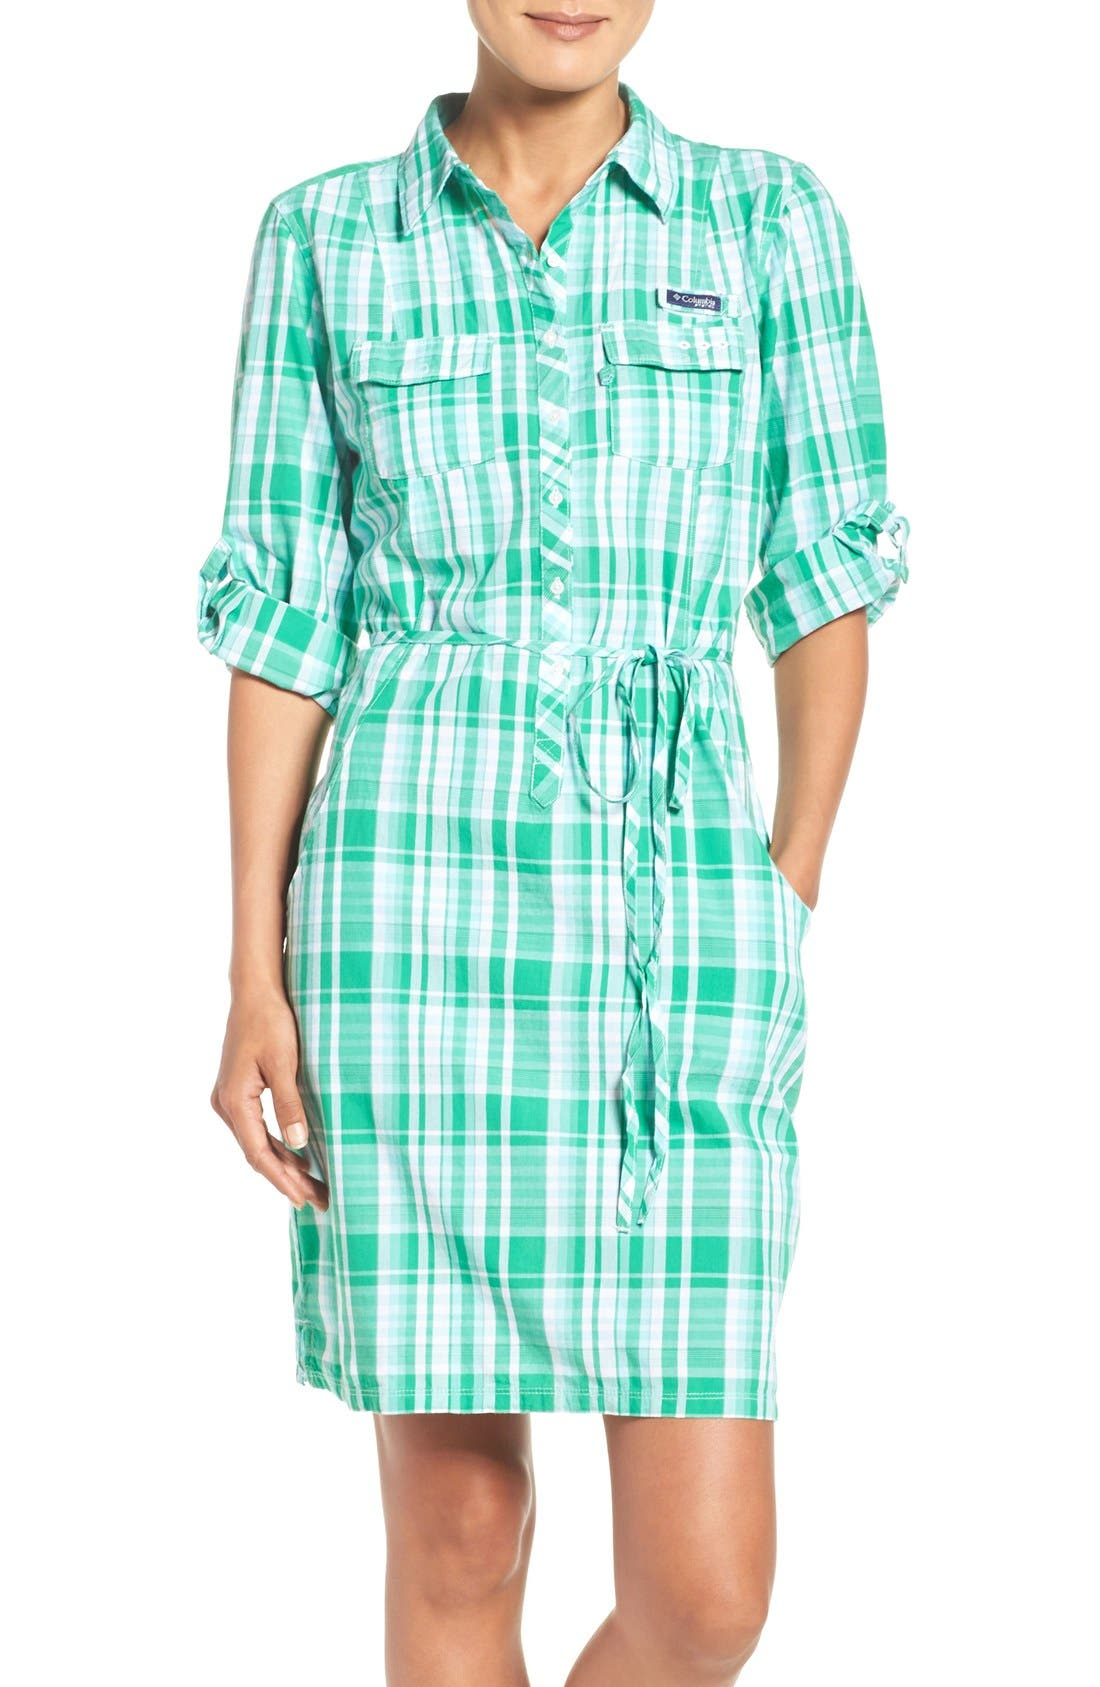 Alternate Image 1 Selected - Columbia 'Super Bonehead' Cotton Shirtdress